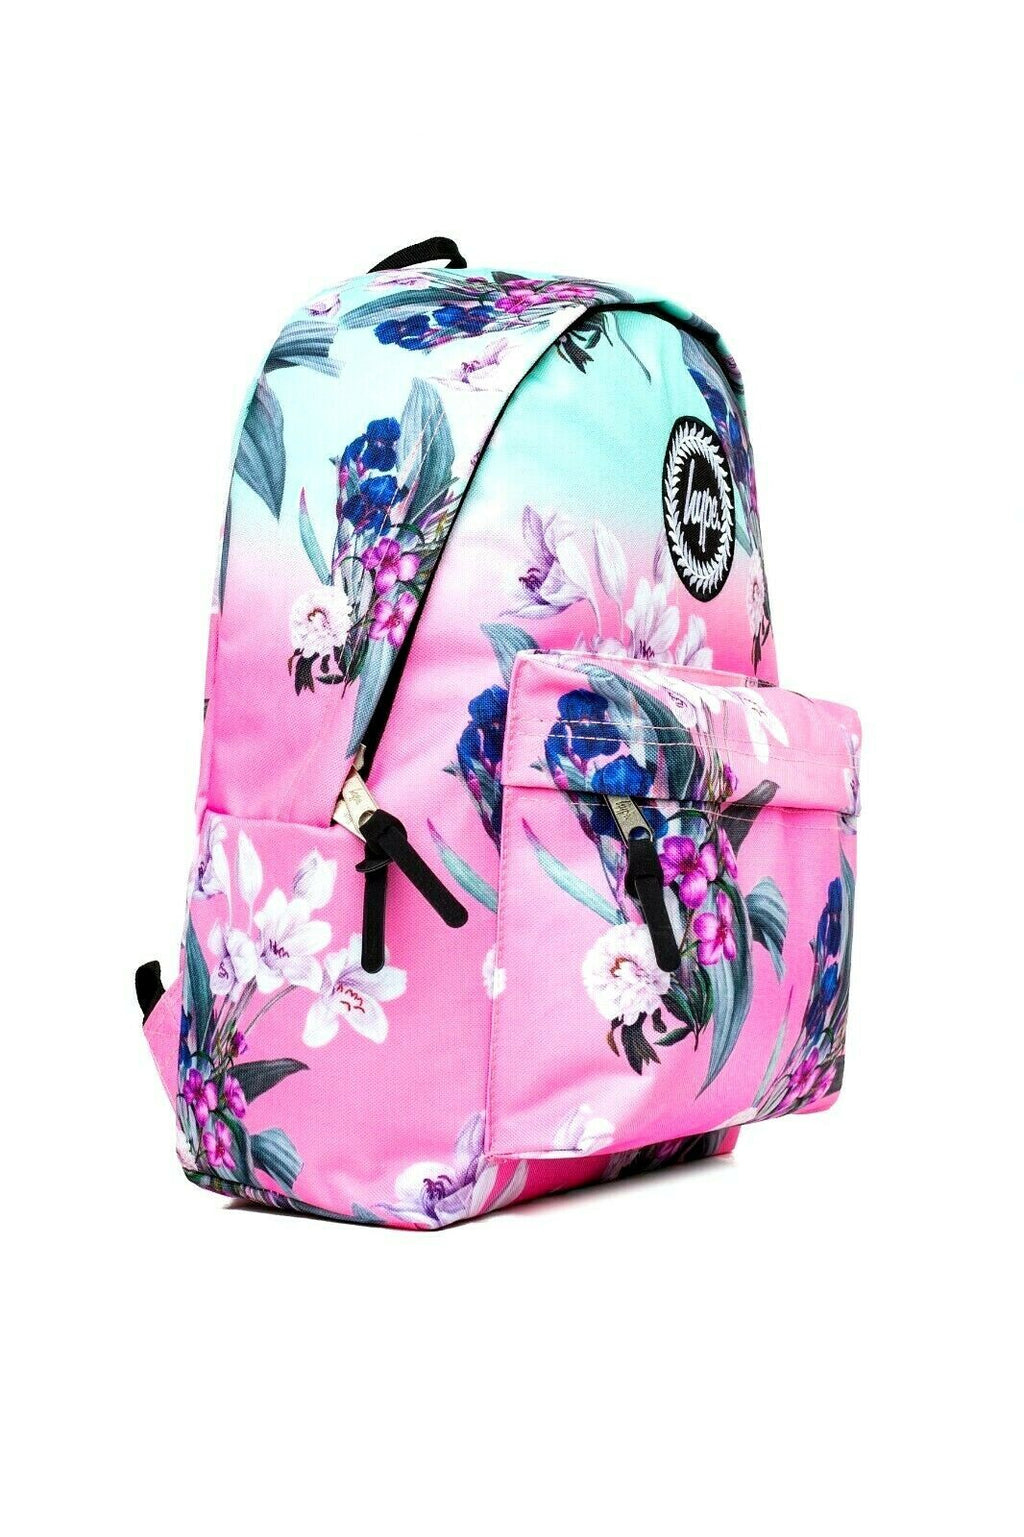 HYPE FLORAL FADE BACKPACK RUCKSACK BAG - MULTI